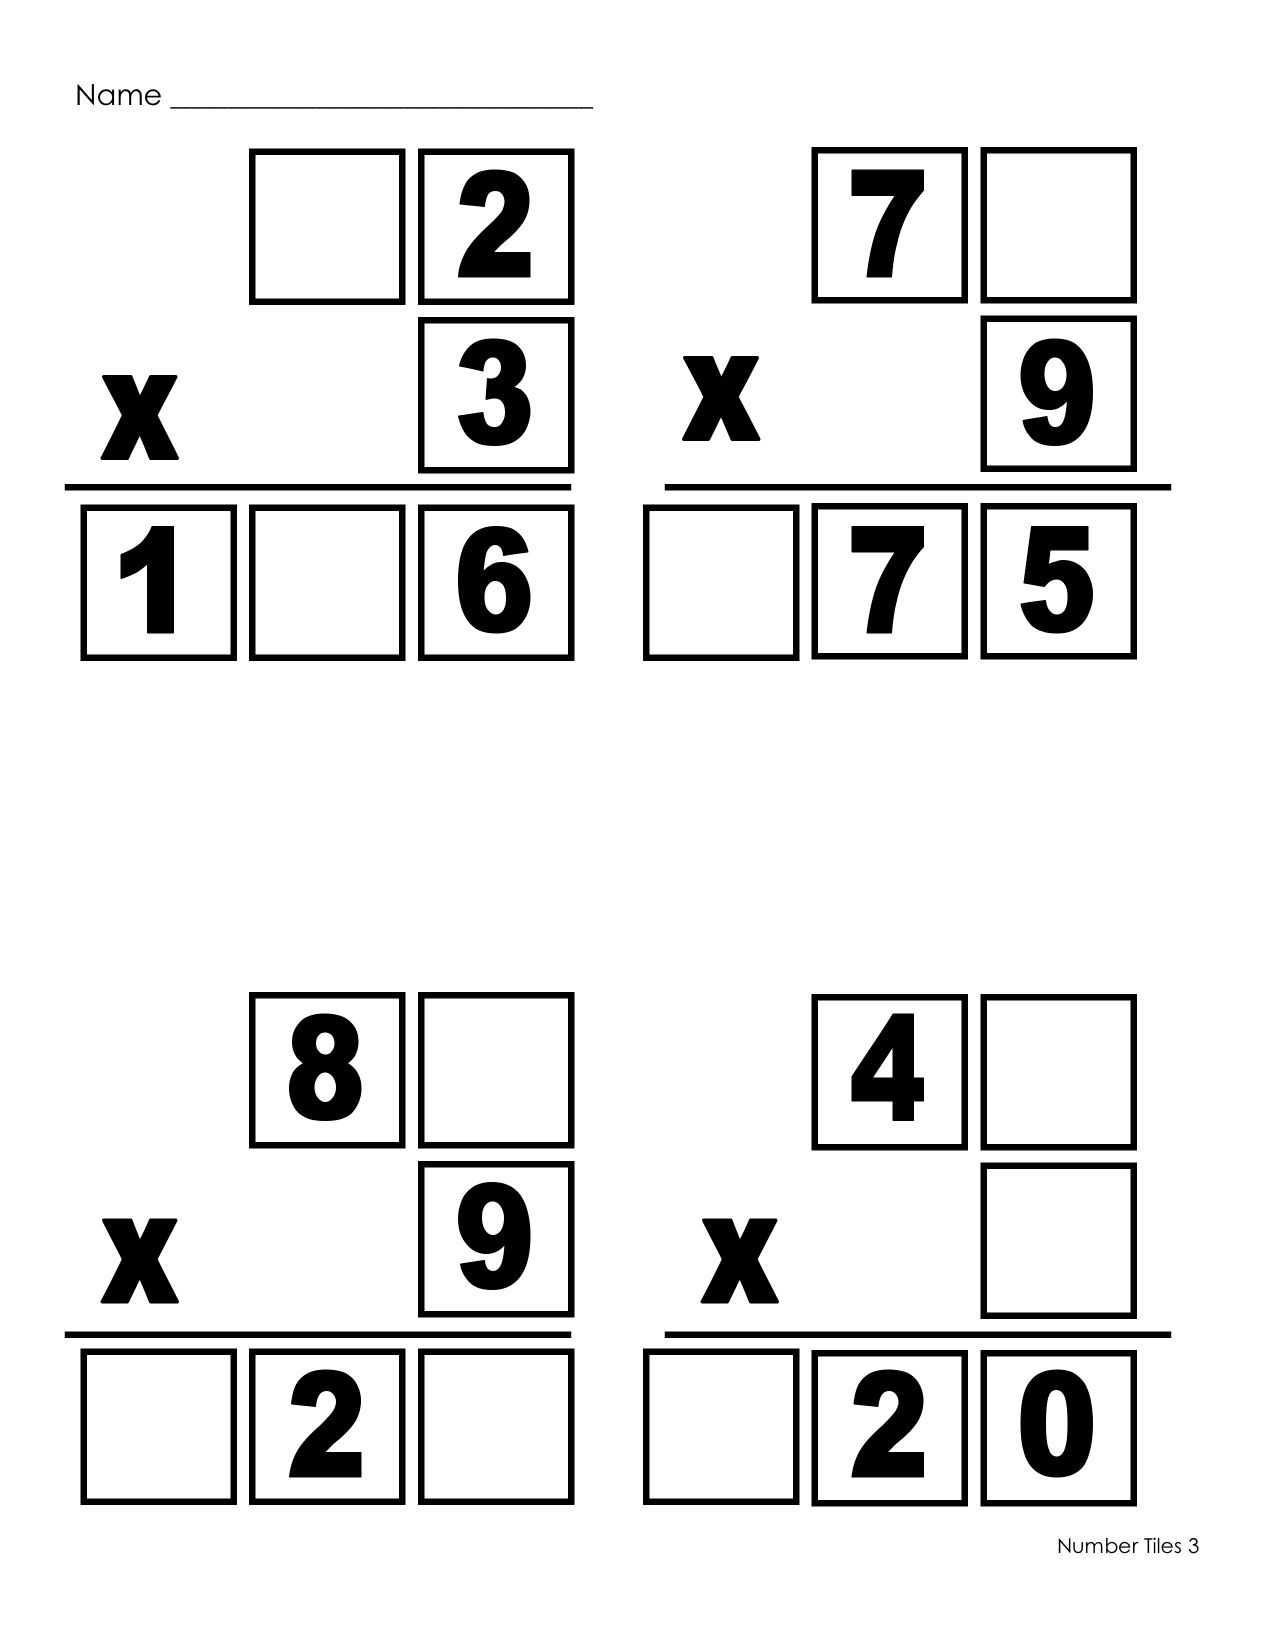 Multiplication number tiles- use the numbers 0-9 one time